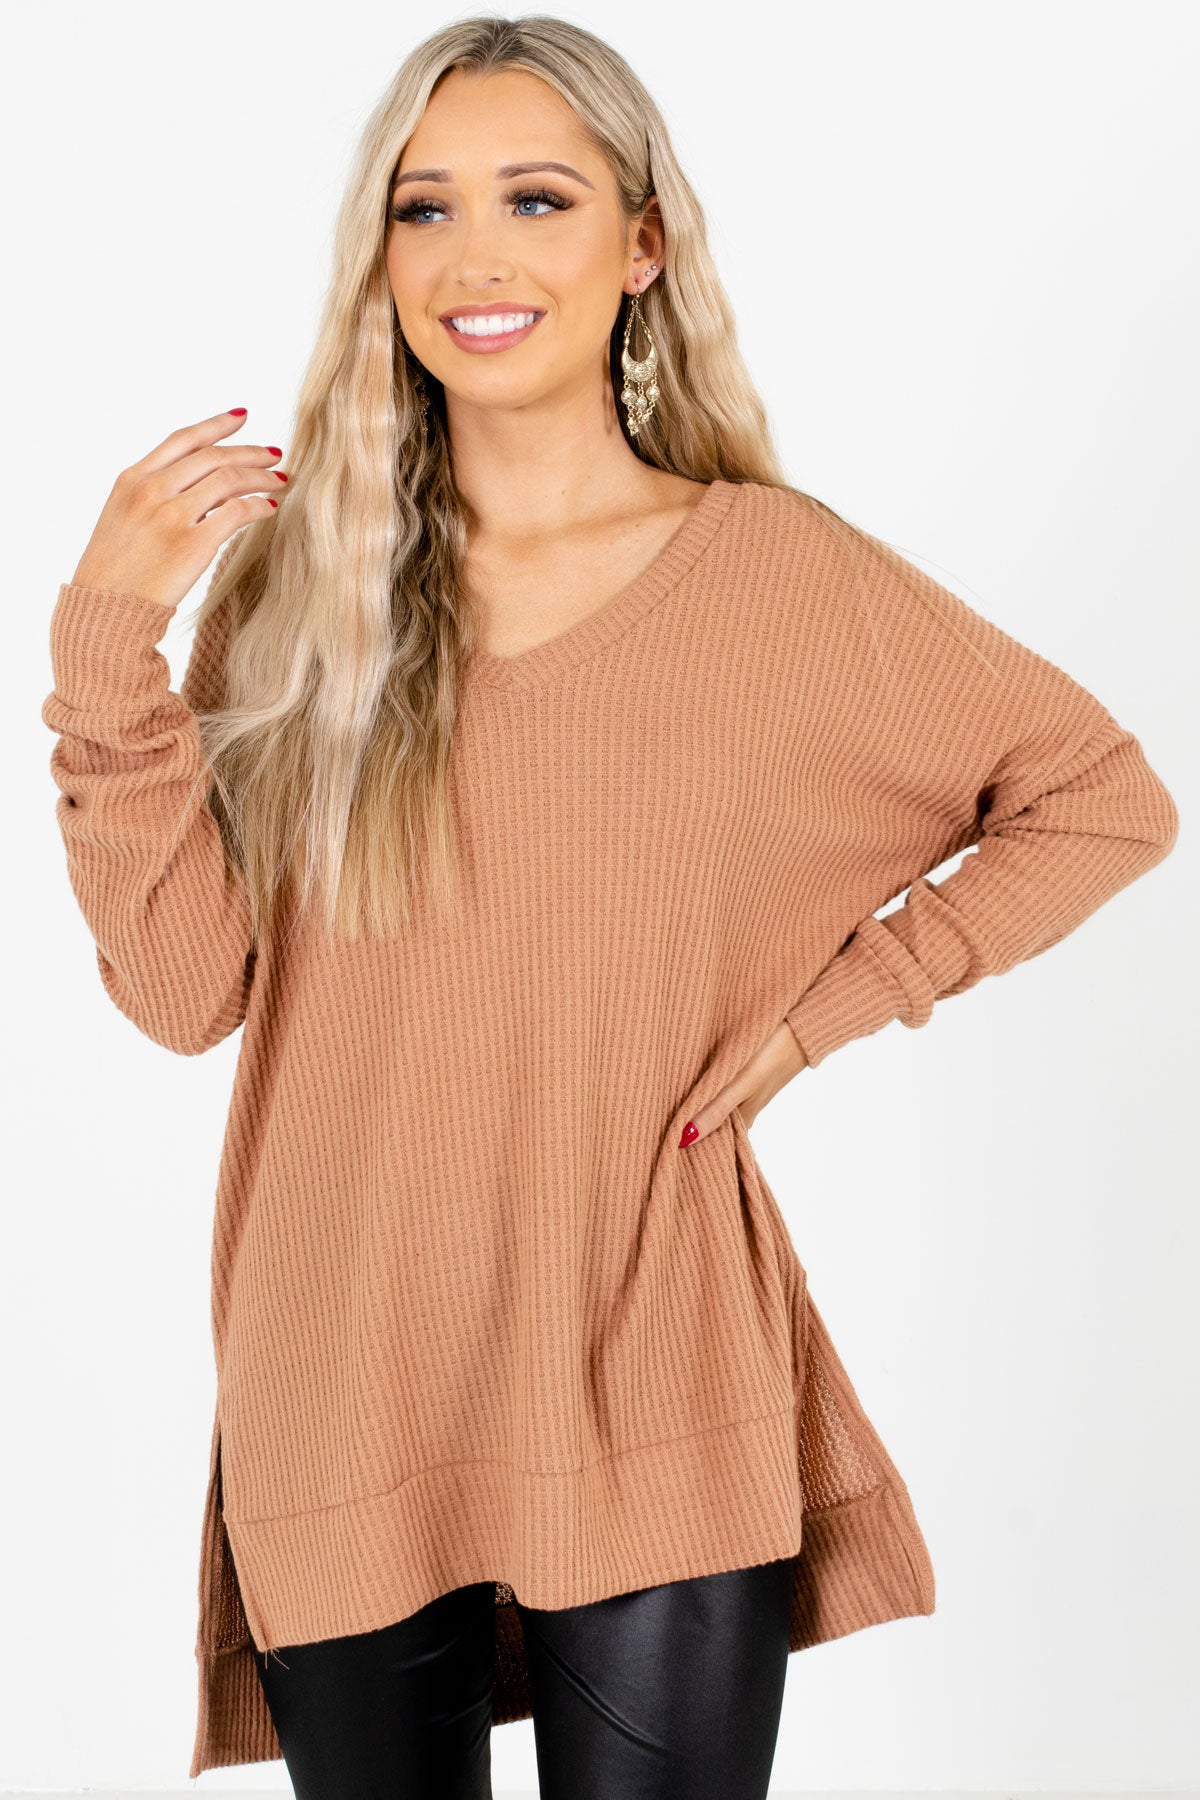 Tan Brown High-Quality Waffle Knit Material Boutique Tops for Women